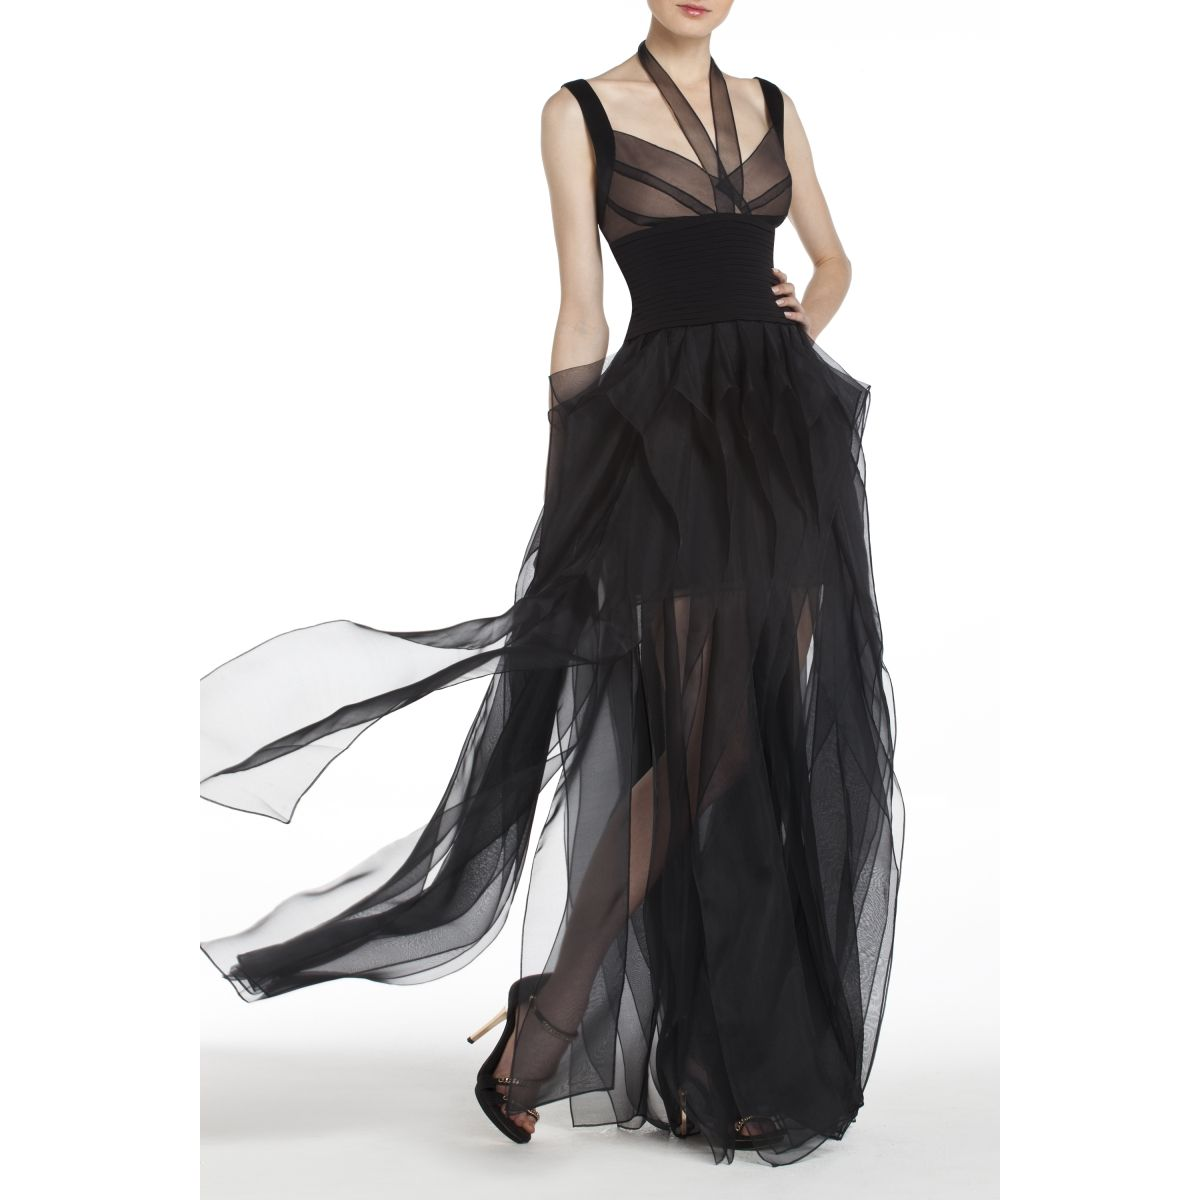 BCBGMAXAZRIA - DRESSES: EVENING: HERVE GOWN | Couture | Pinterest ...